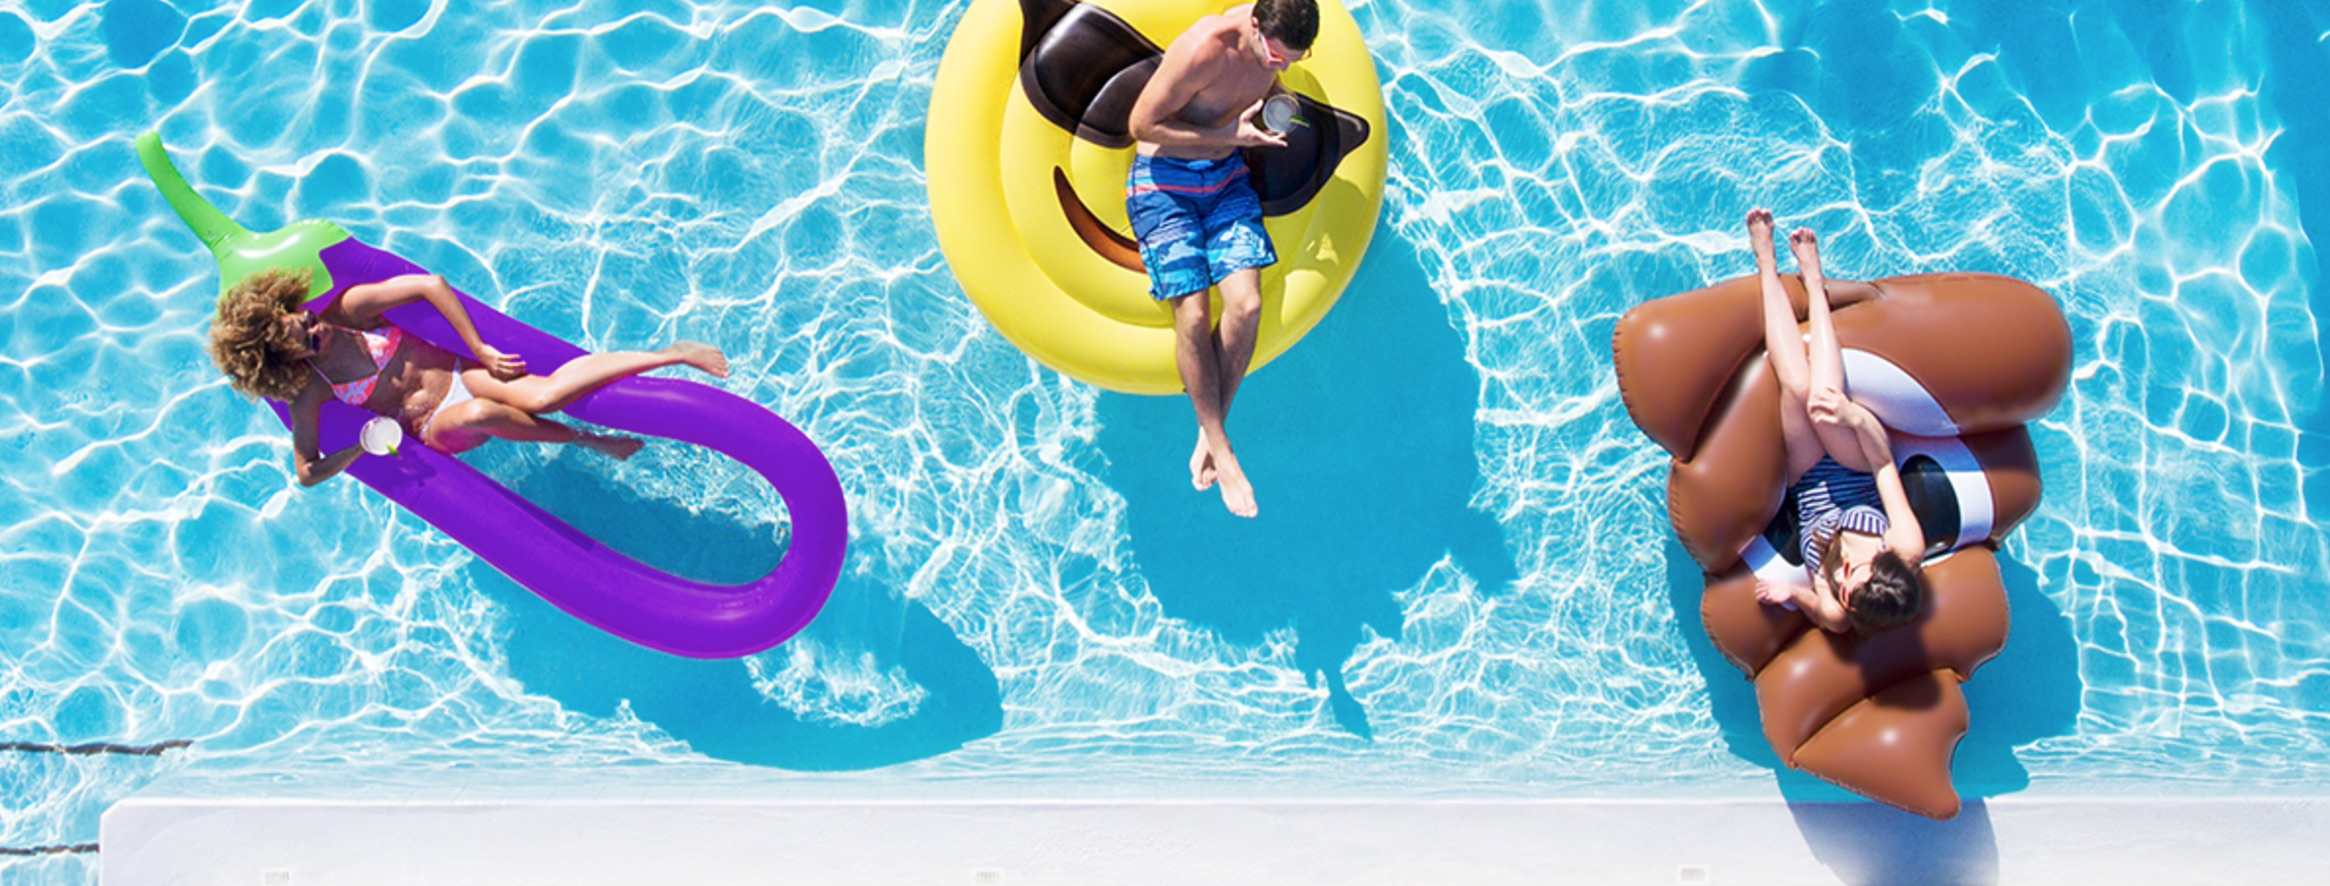 Buzzfeed Wants To Sell You Ohio-Scented Candles And Poo Emoji Pool Floats